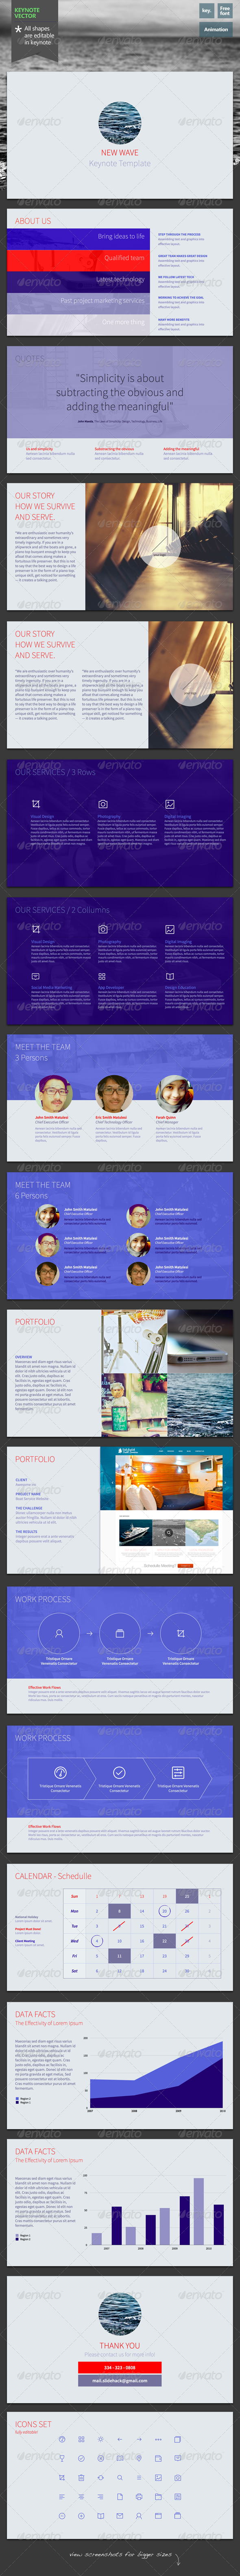 New Wave - Keynote Template - Keynote Templates Presentation Templates